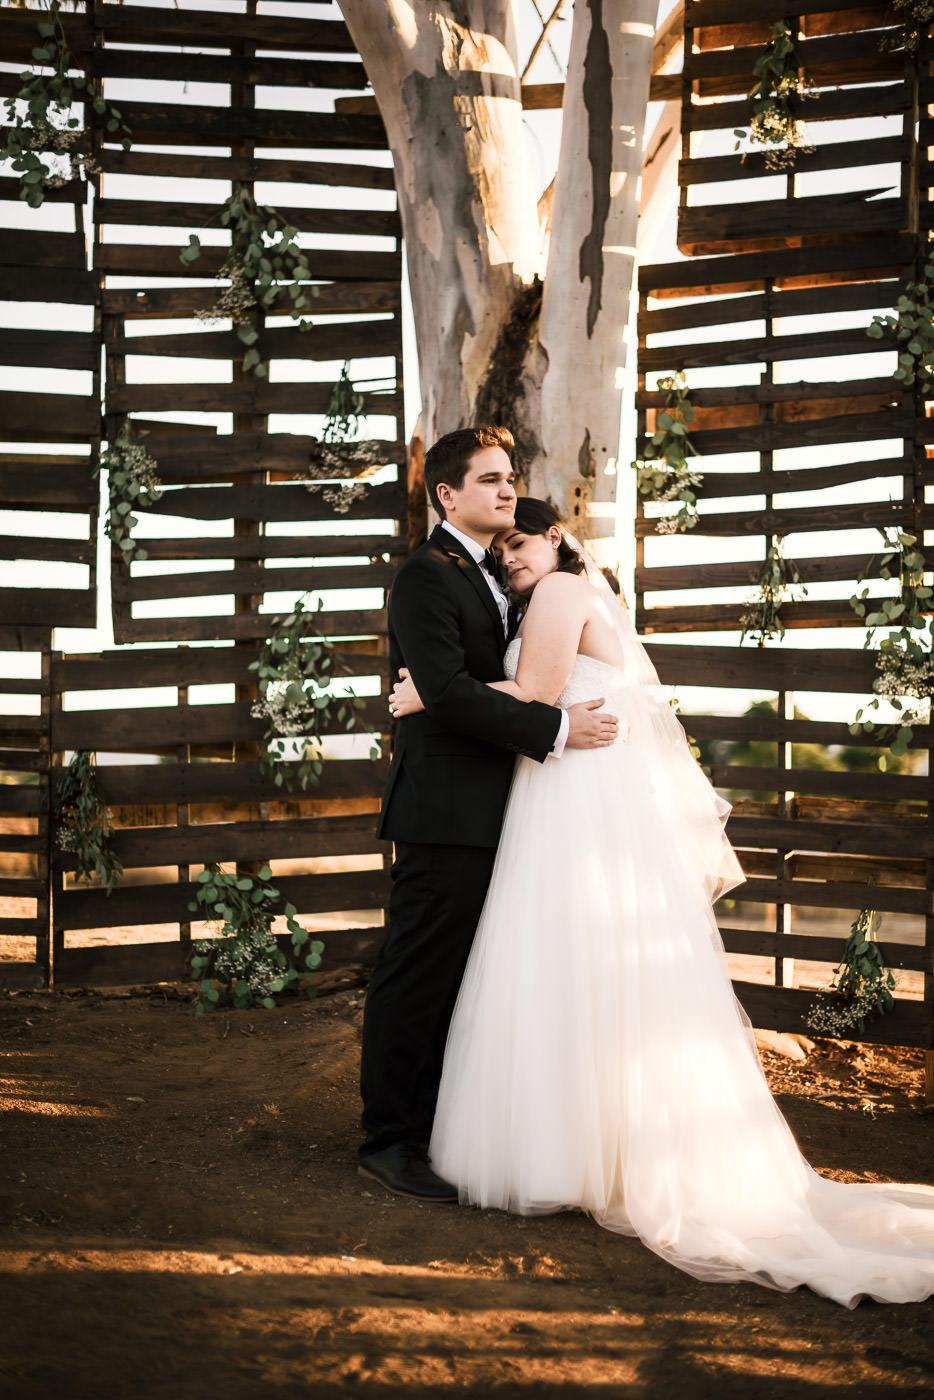 Couple enjoys a quiet moment alone after their wedding ceremony in the Temecula Wine Country.